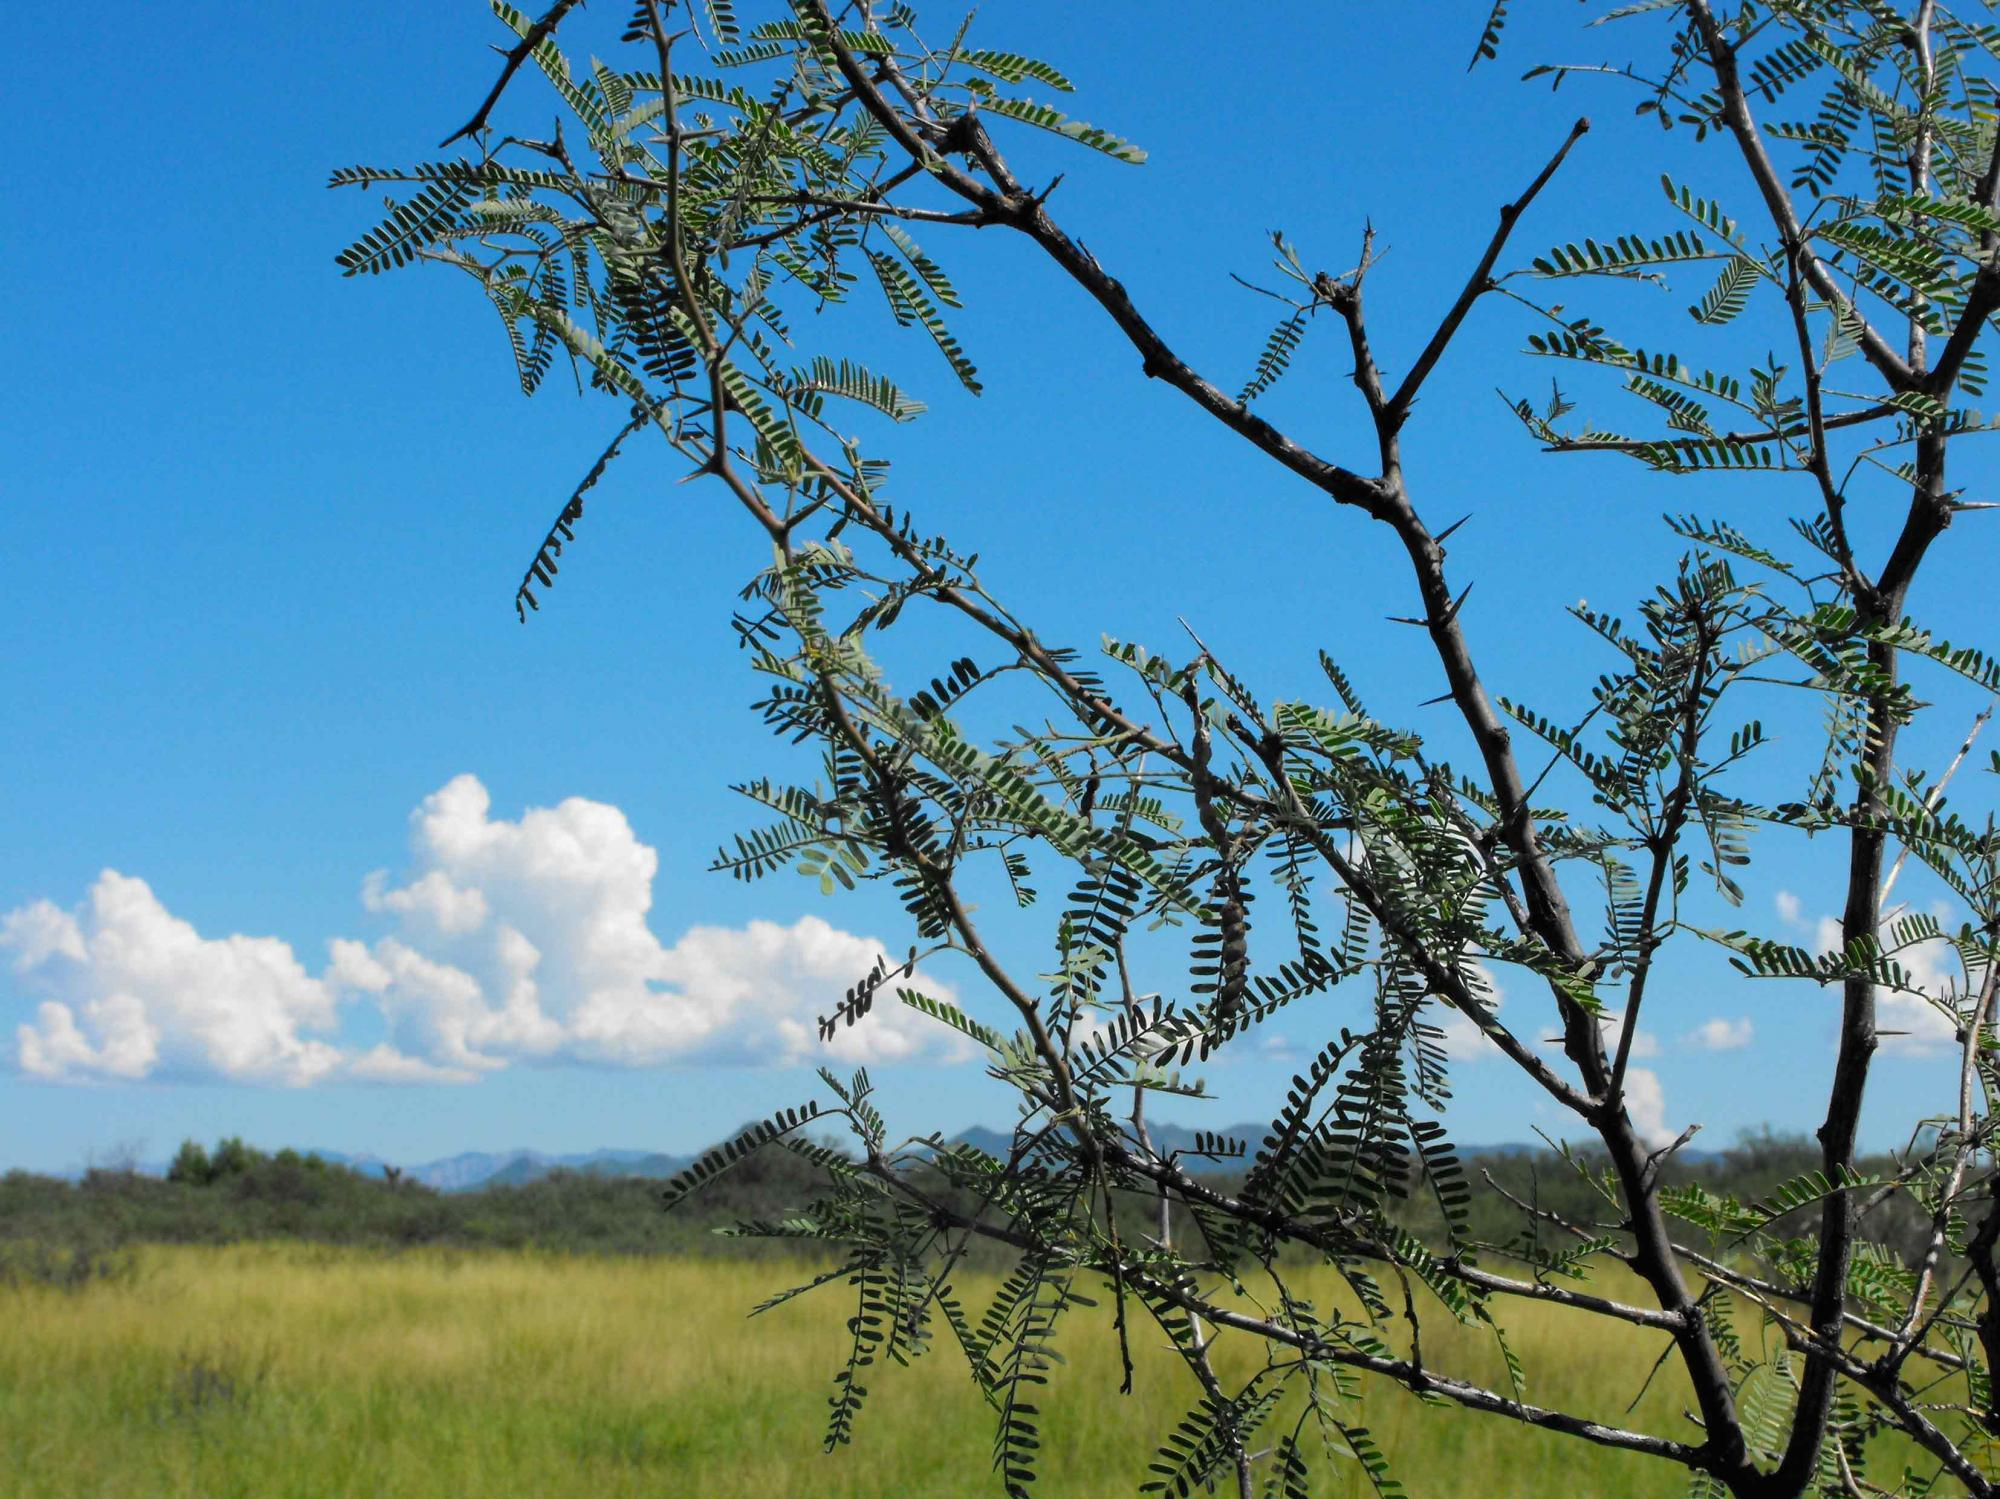 Their extremely deep-reaching roots give mesquite trees an edge over grasses.